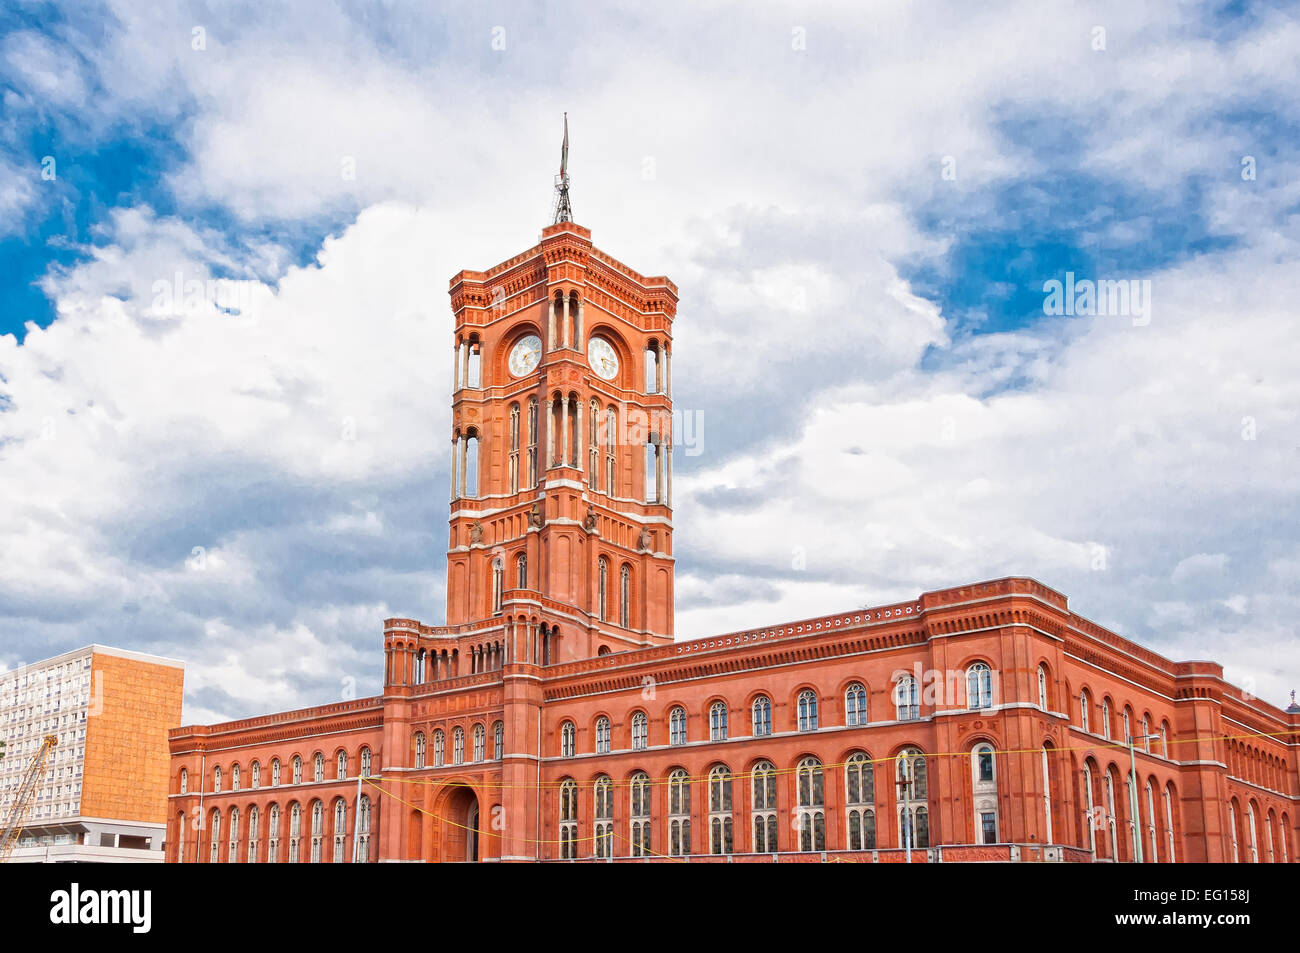 exterior of the Rotes Rathaus in Alexanderplatz, Berlin, Germany - Stock Image